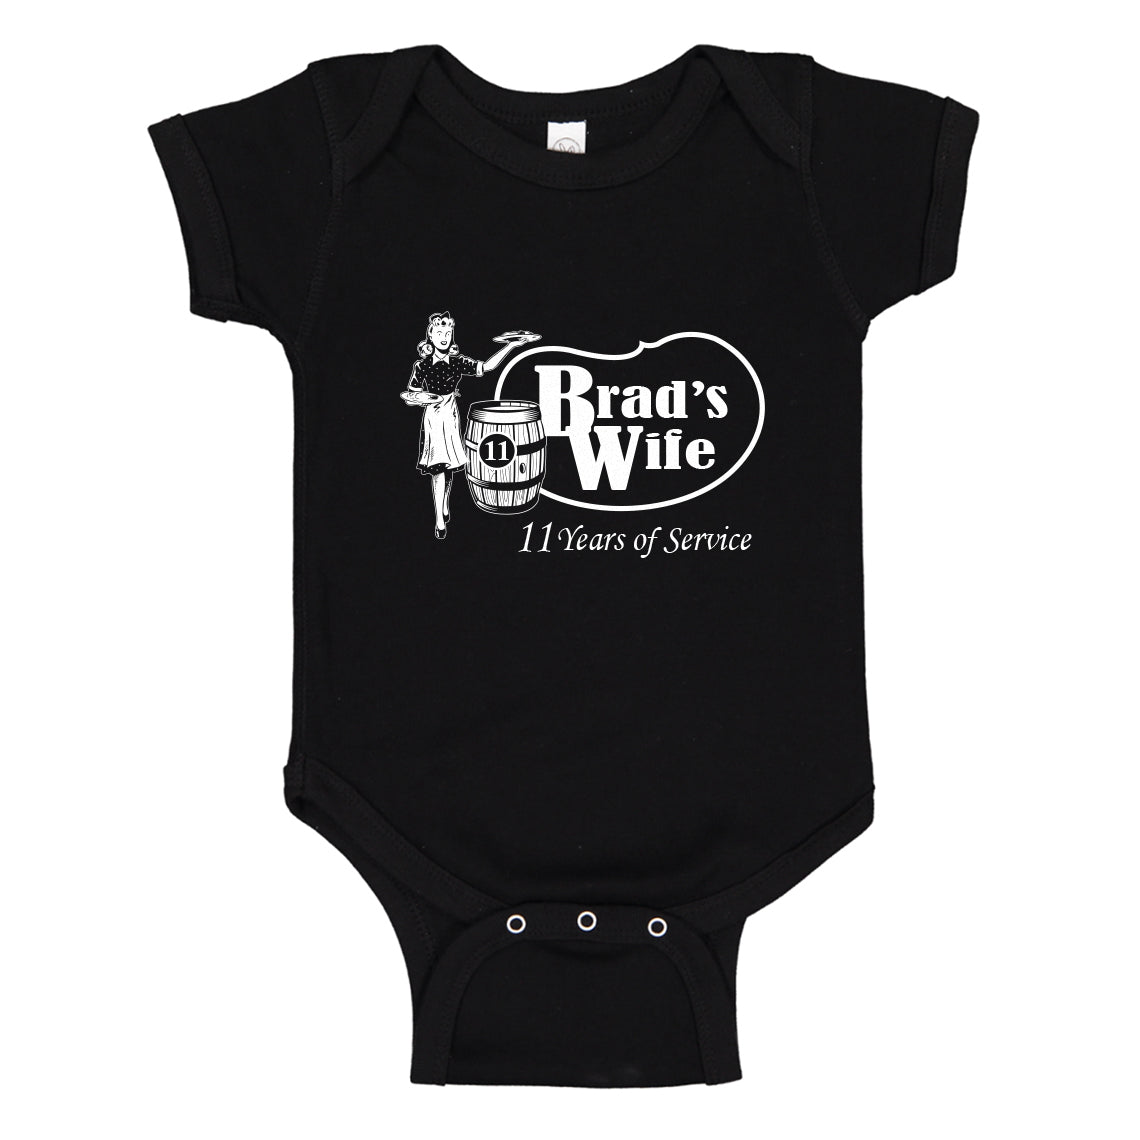 Baby Onesie Brad's Wife 100% Cotton Infant Bodysuit